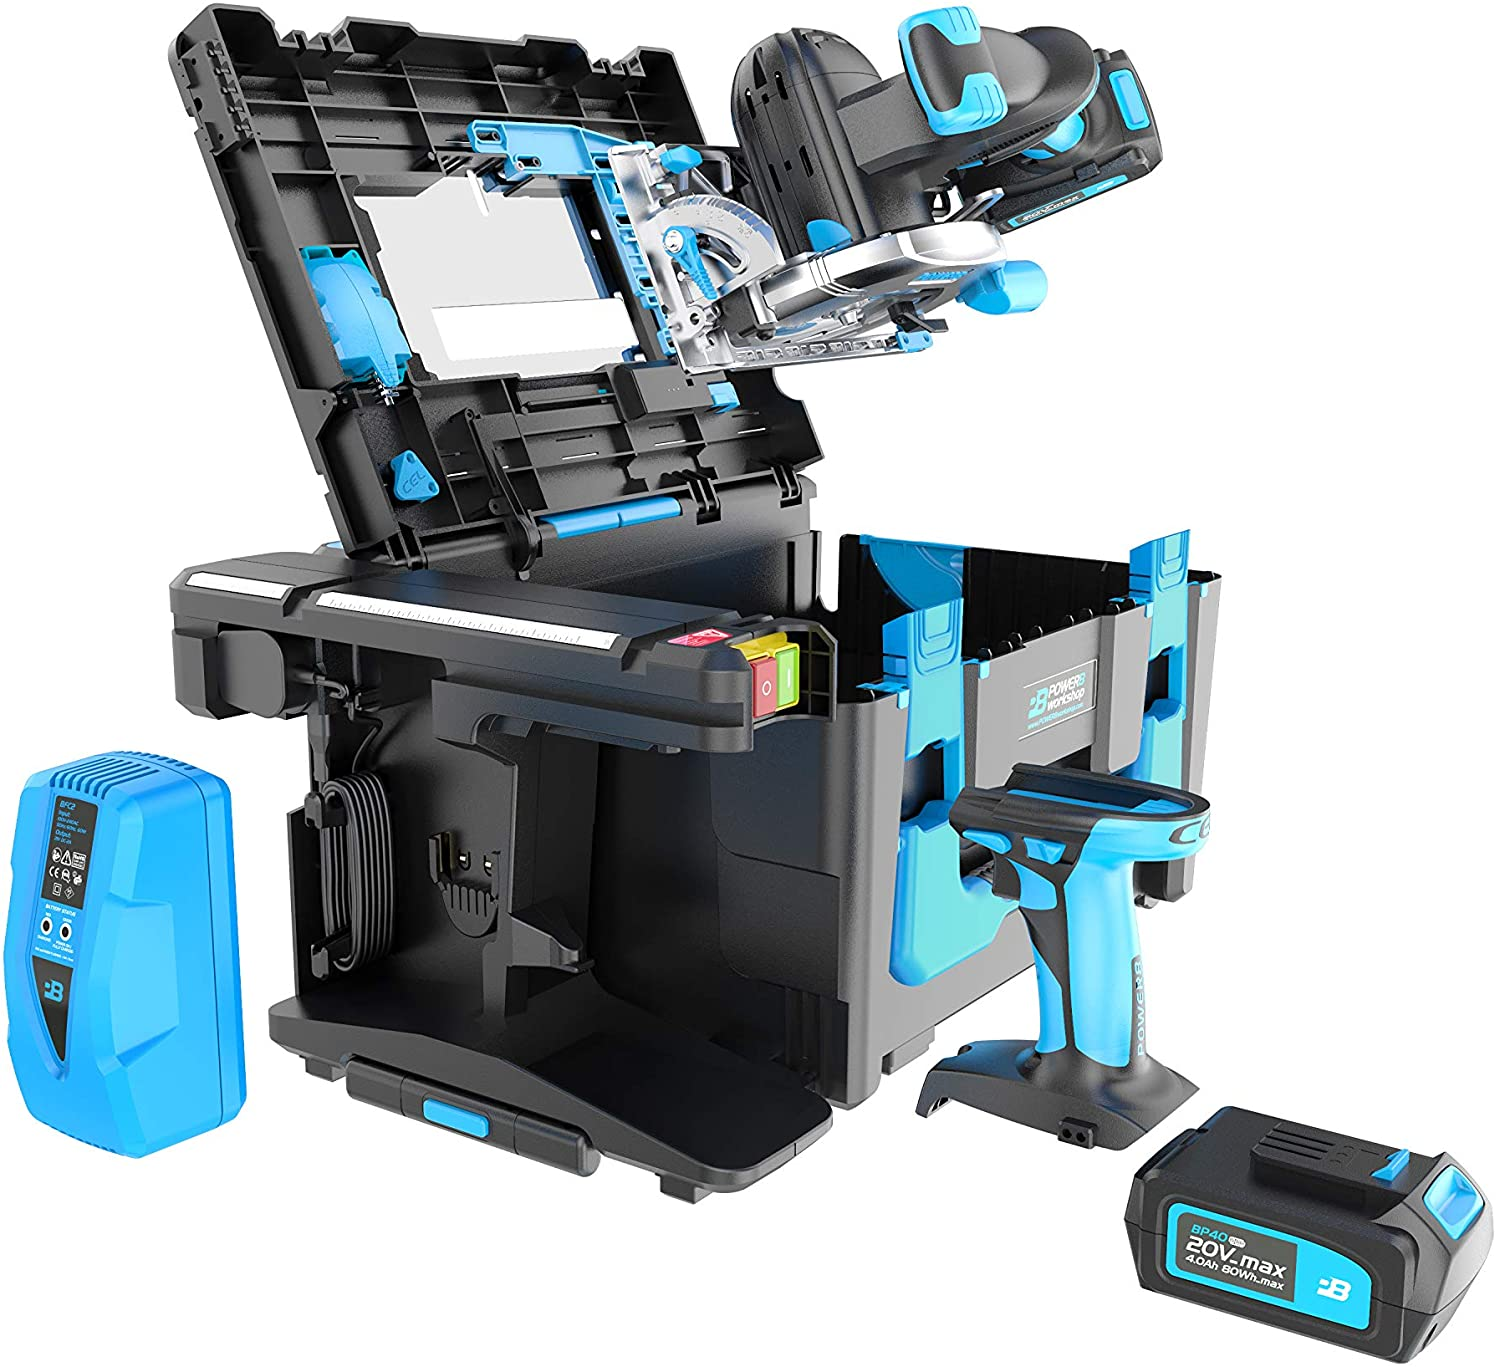 Power8 CEL POWER8 Create Plus, All-In-One Multi-function Combo Tool Kit, Armored Case & Accessories (P8-CP1)